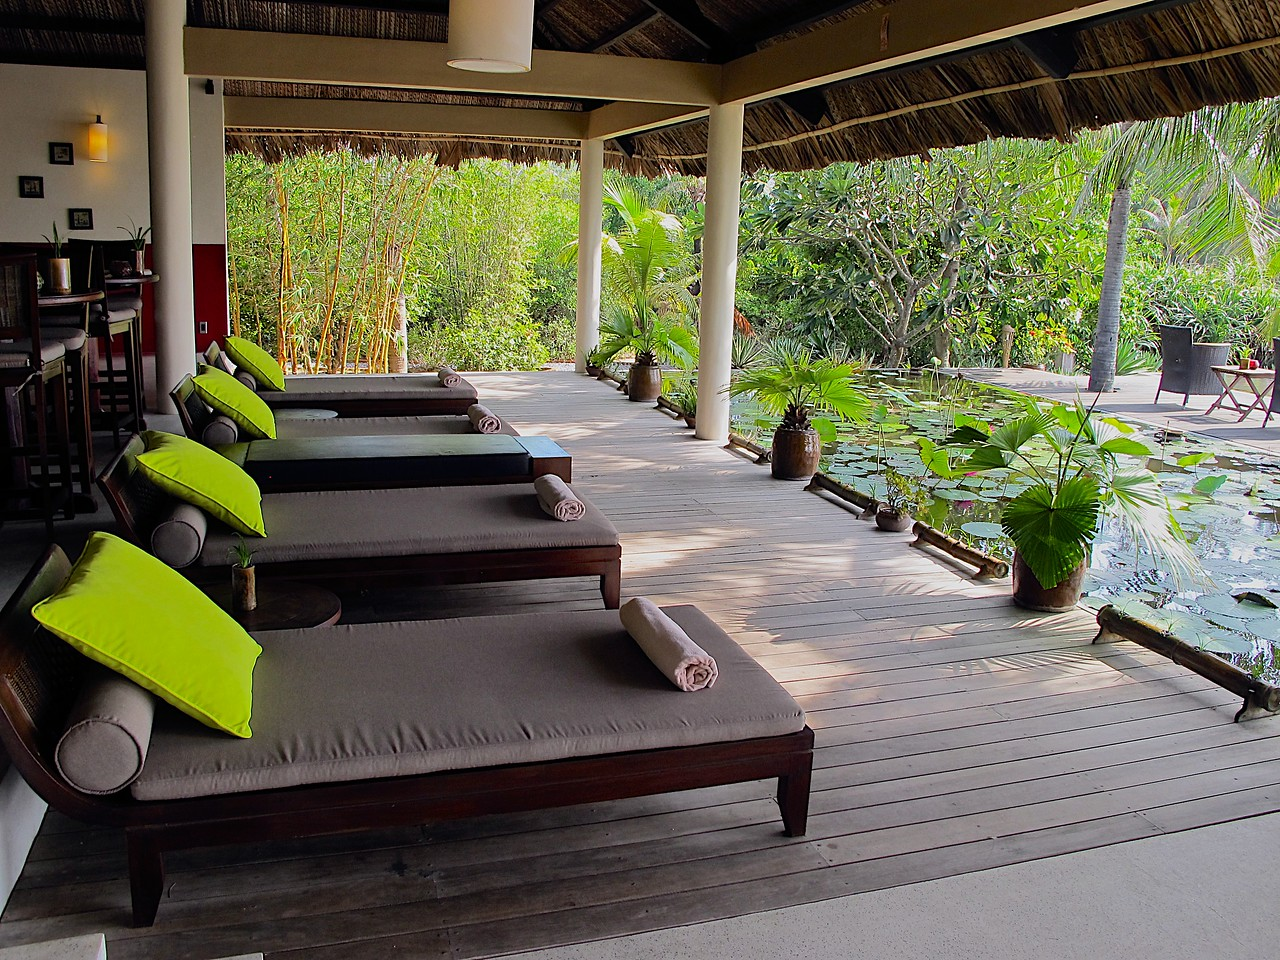 ….as well as several lounge chairs in the shade facing the ocean and main pool.